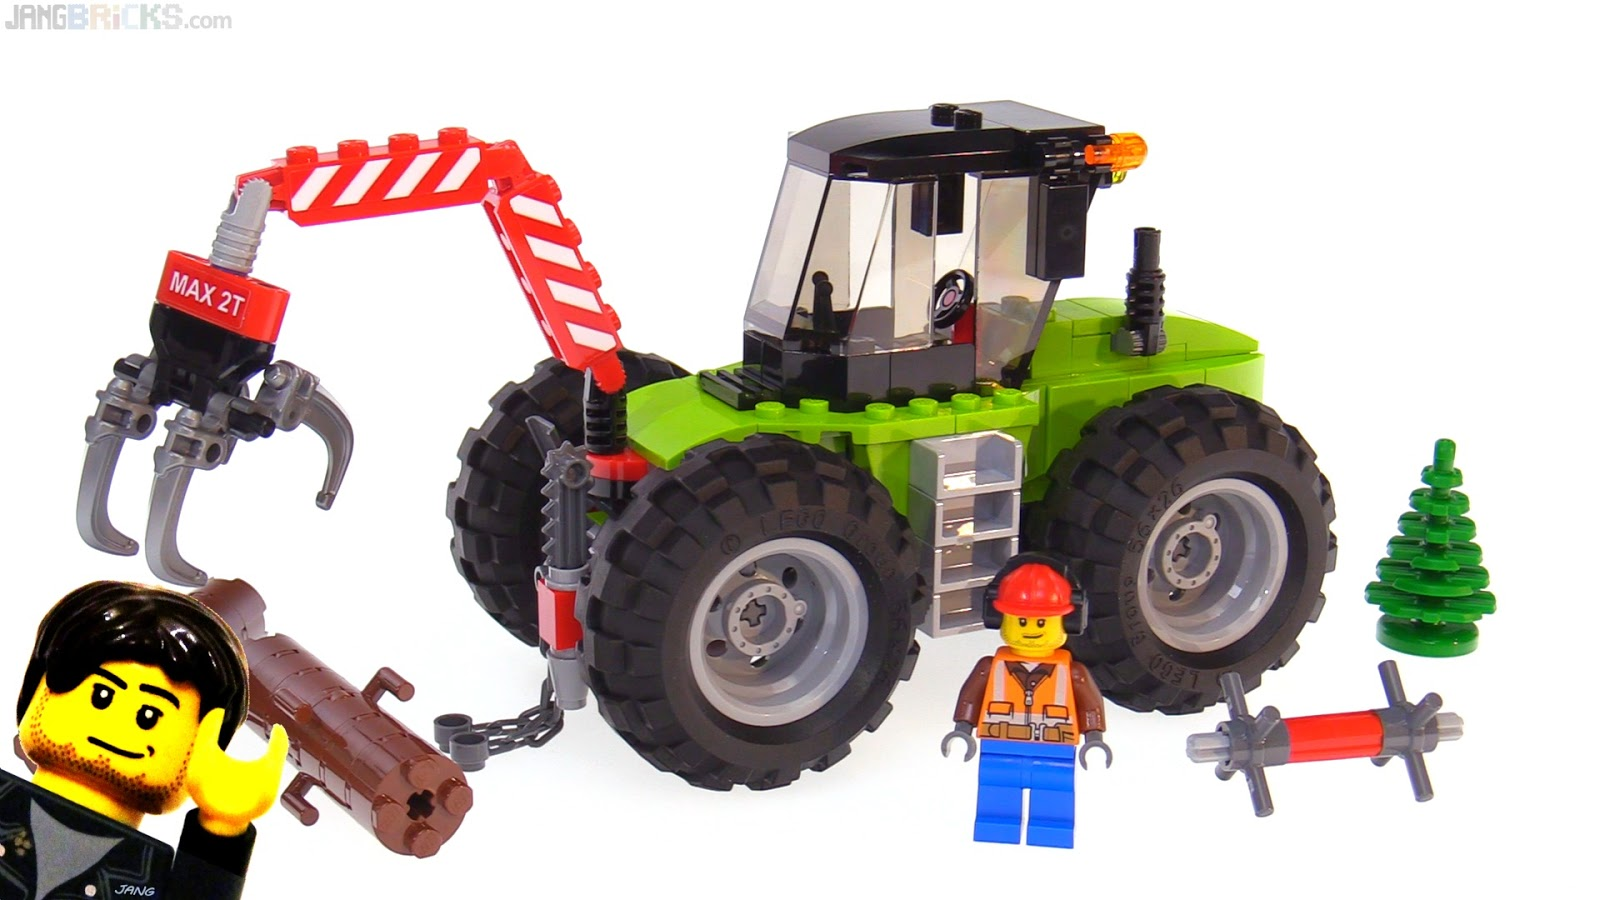 Lego City 2018 Forest Tractor 60181 Review